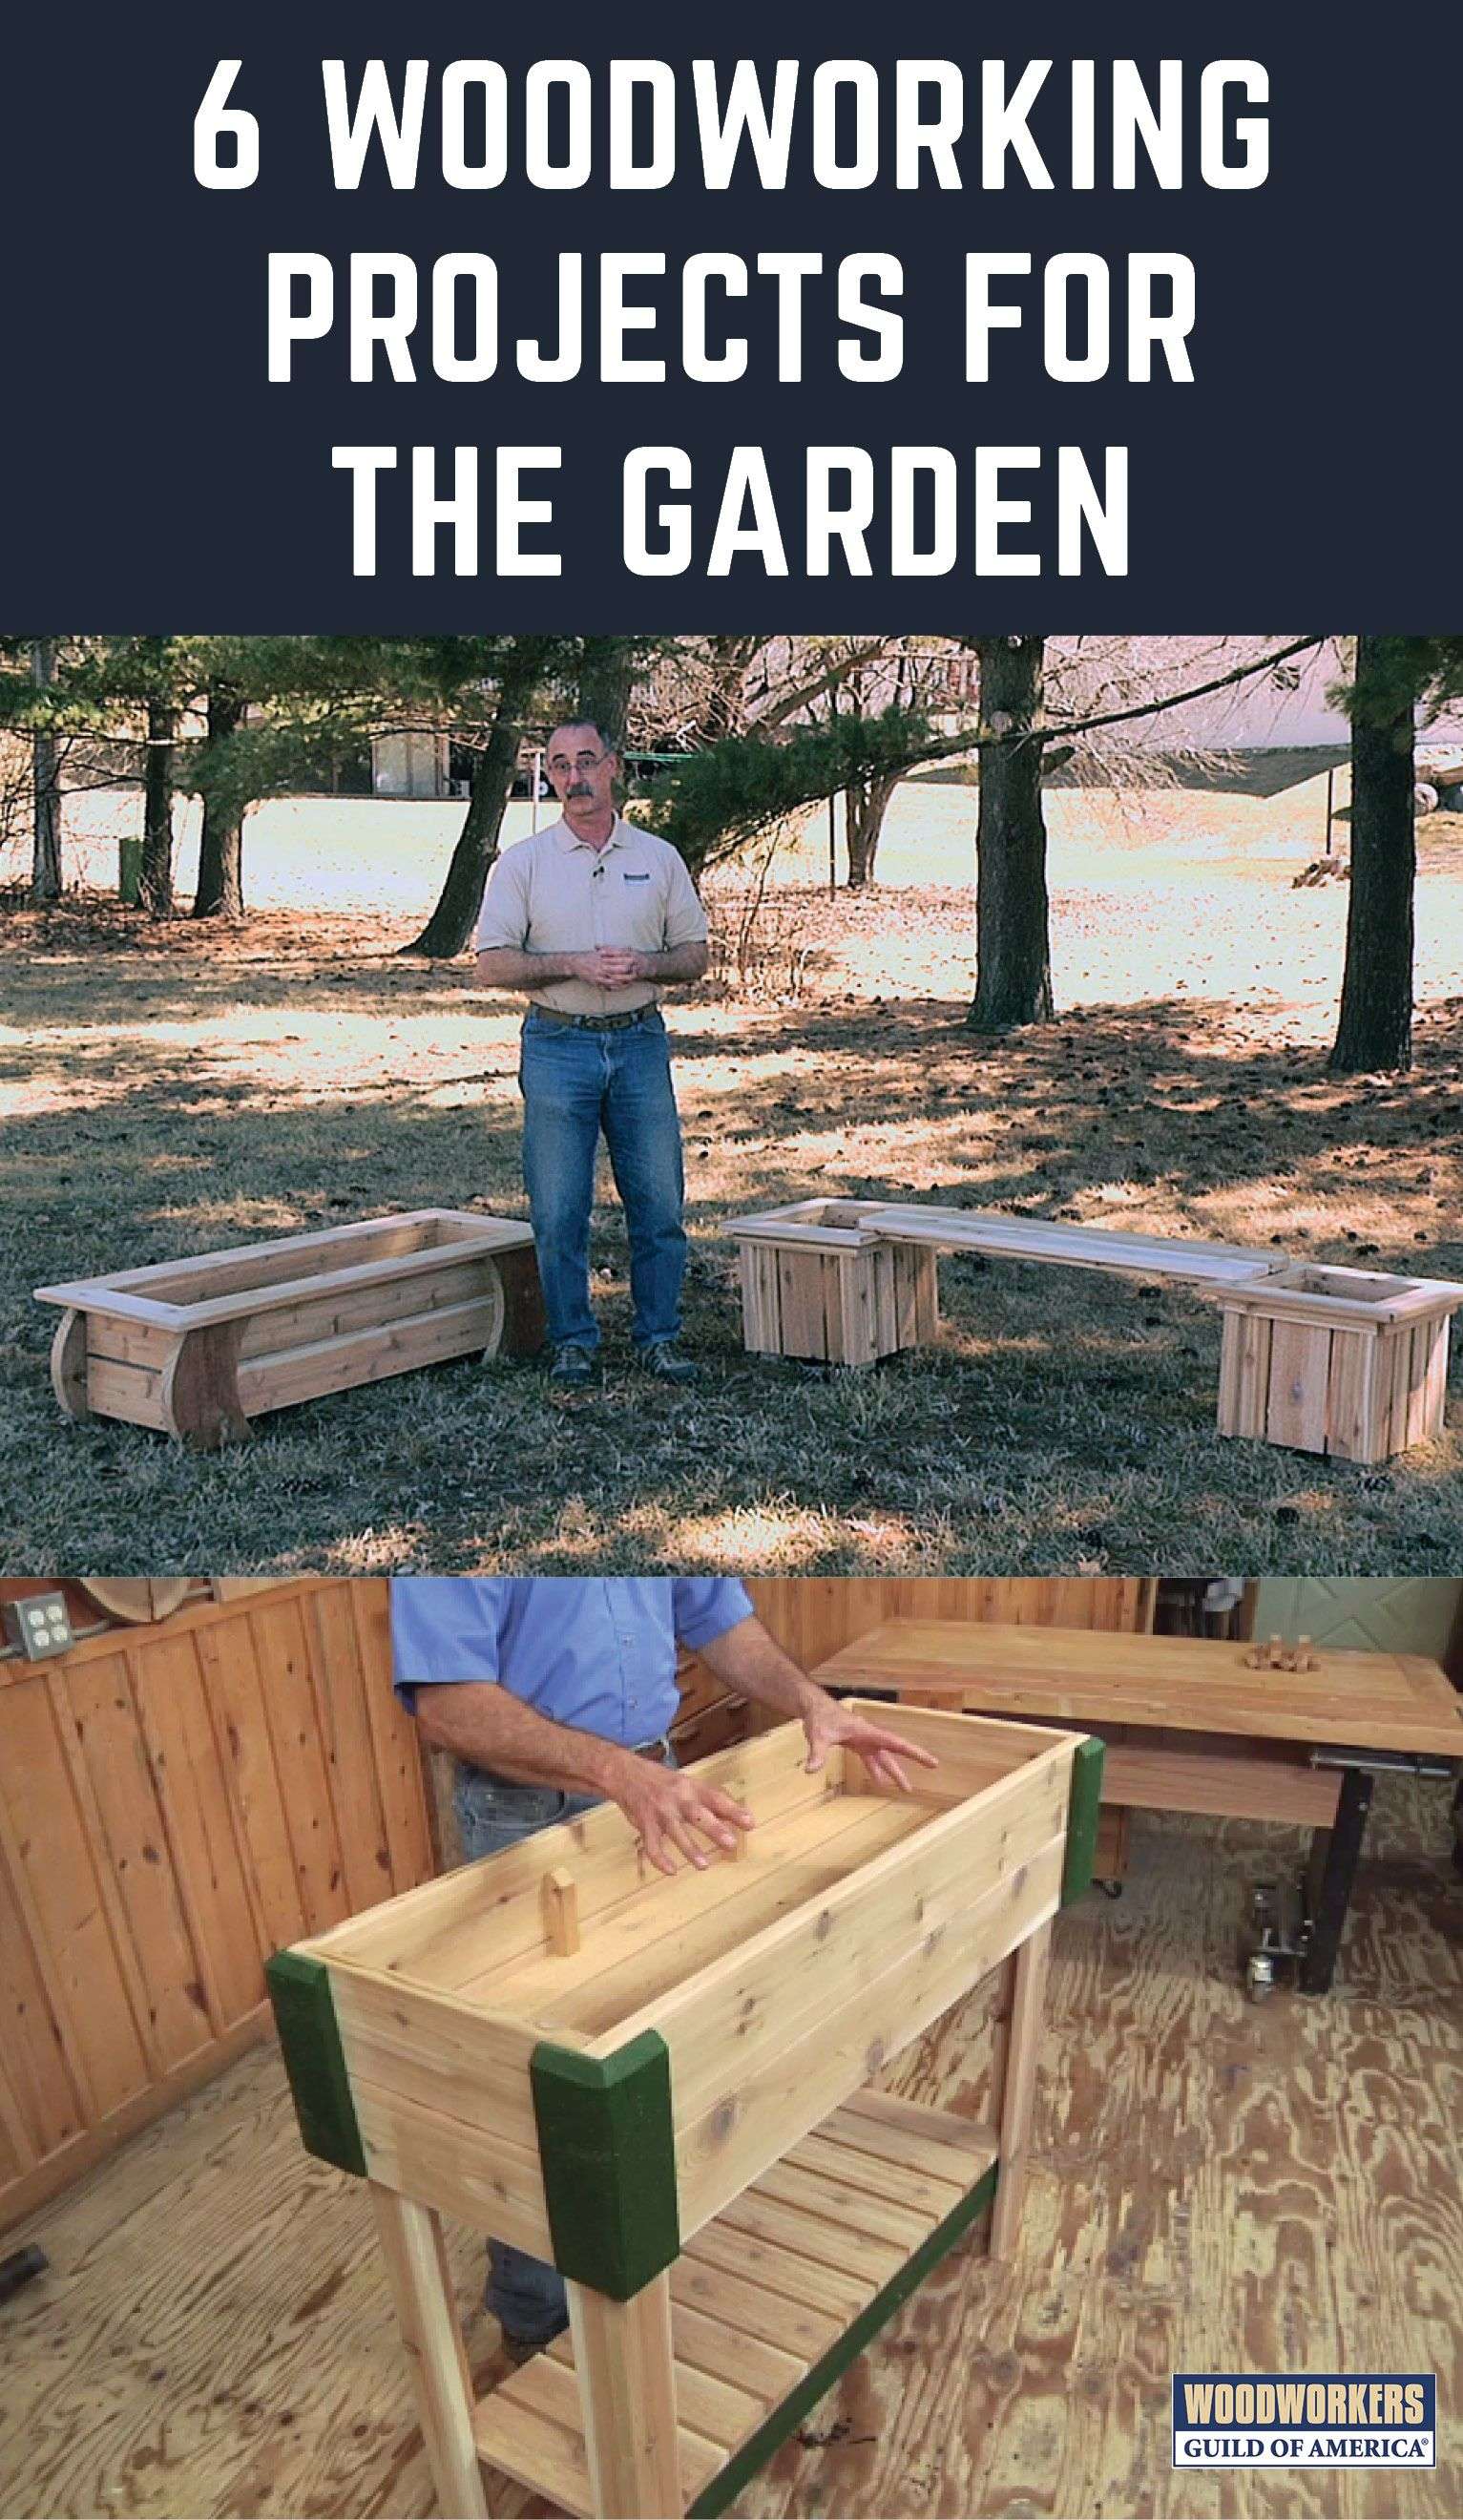 6 woodworking projects for the garden | woodworking projects